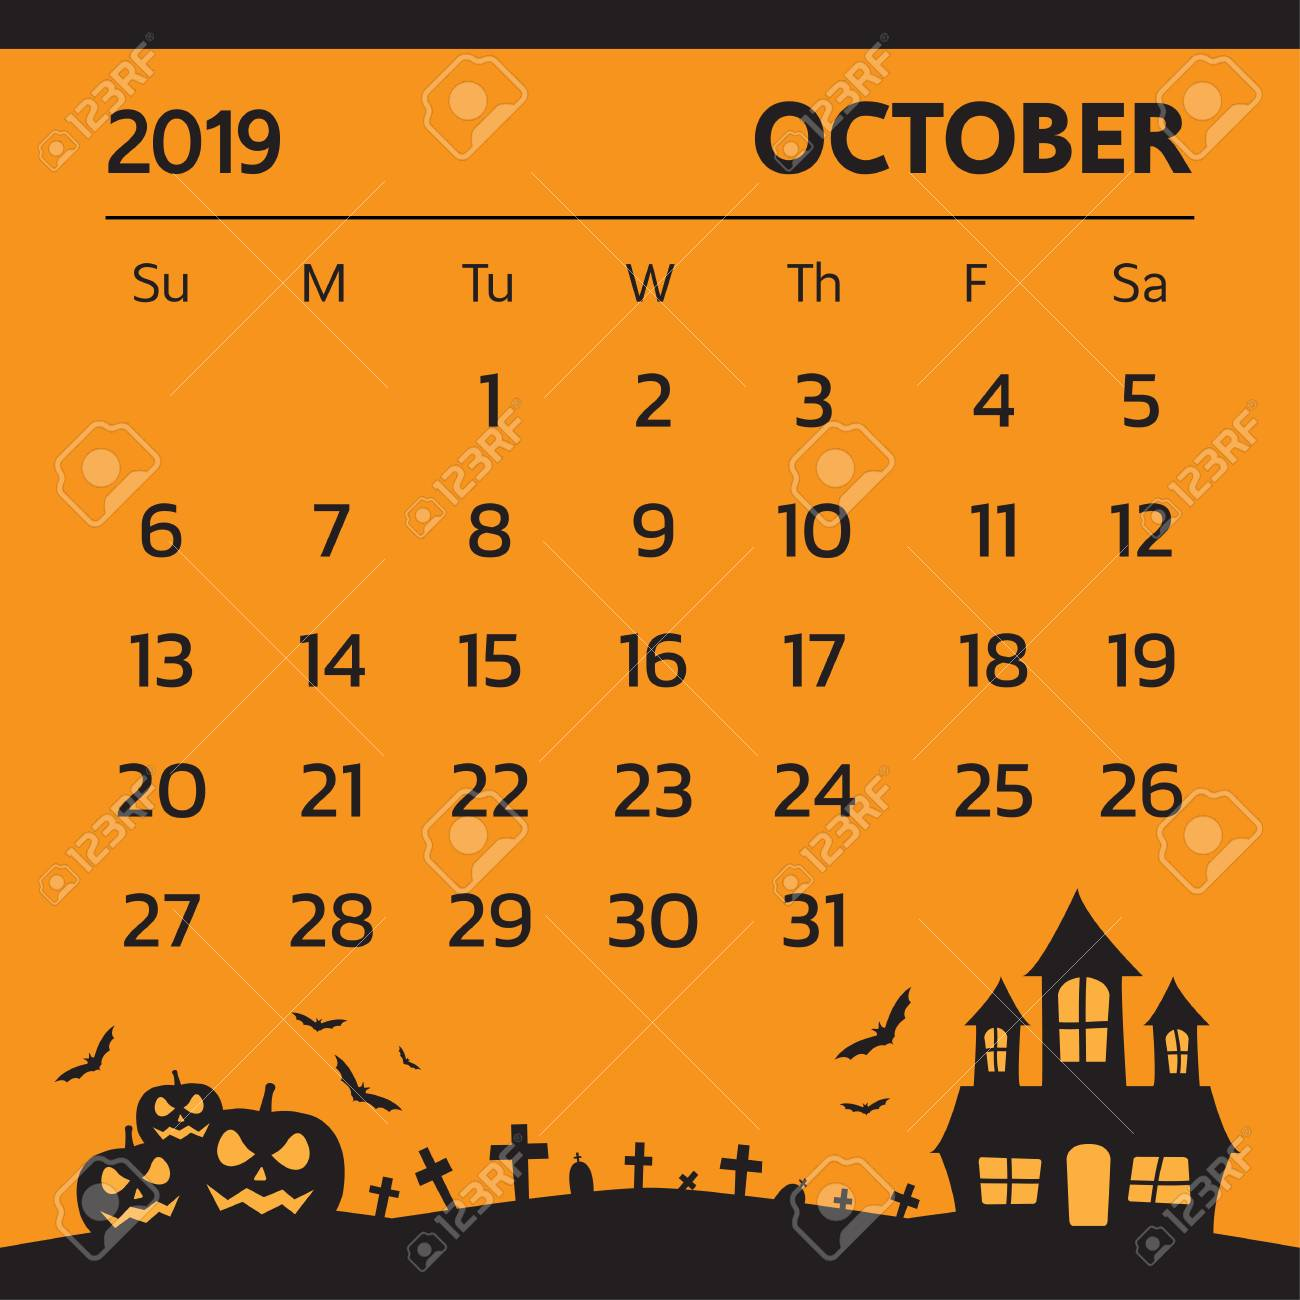 Halloween 2019 Calendar Calendar For October 2019 With Halloween Theme   Vector Royalty